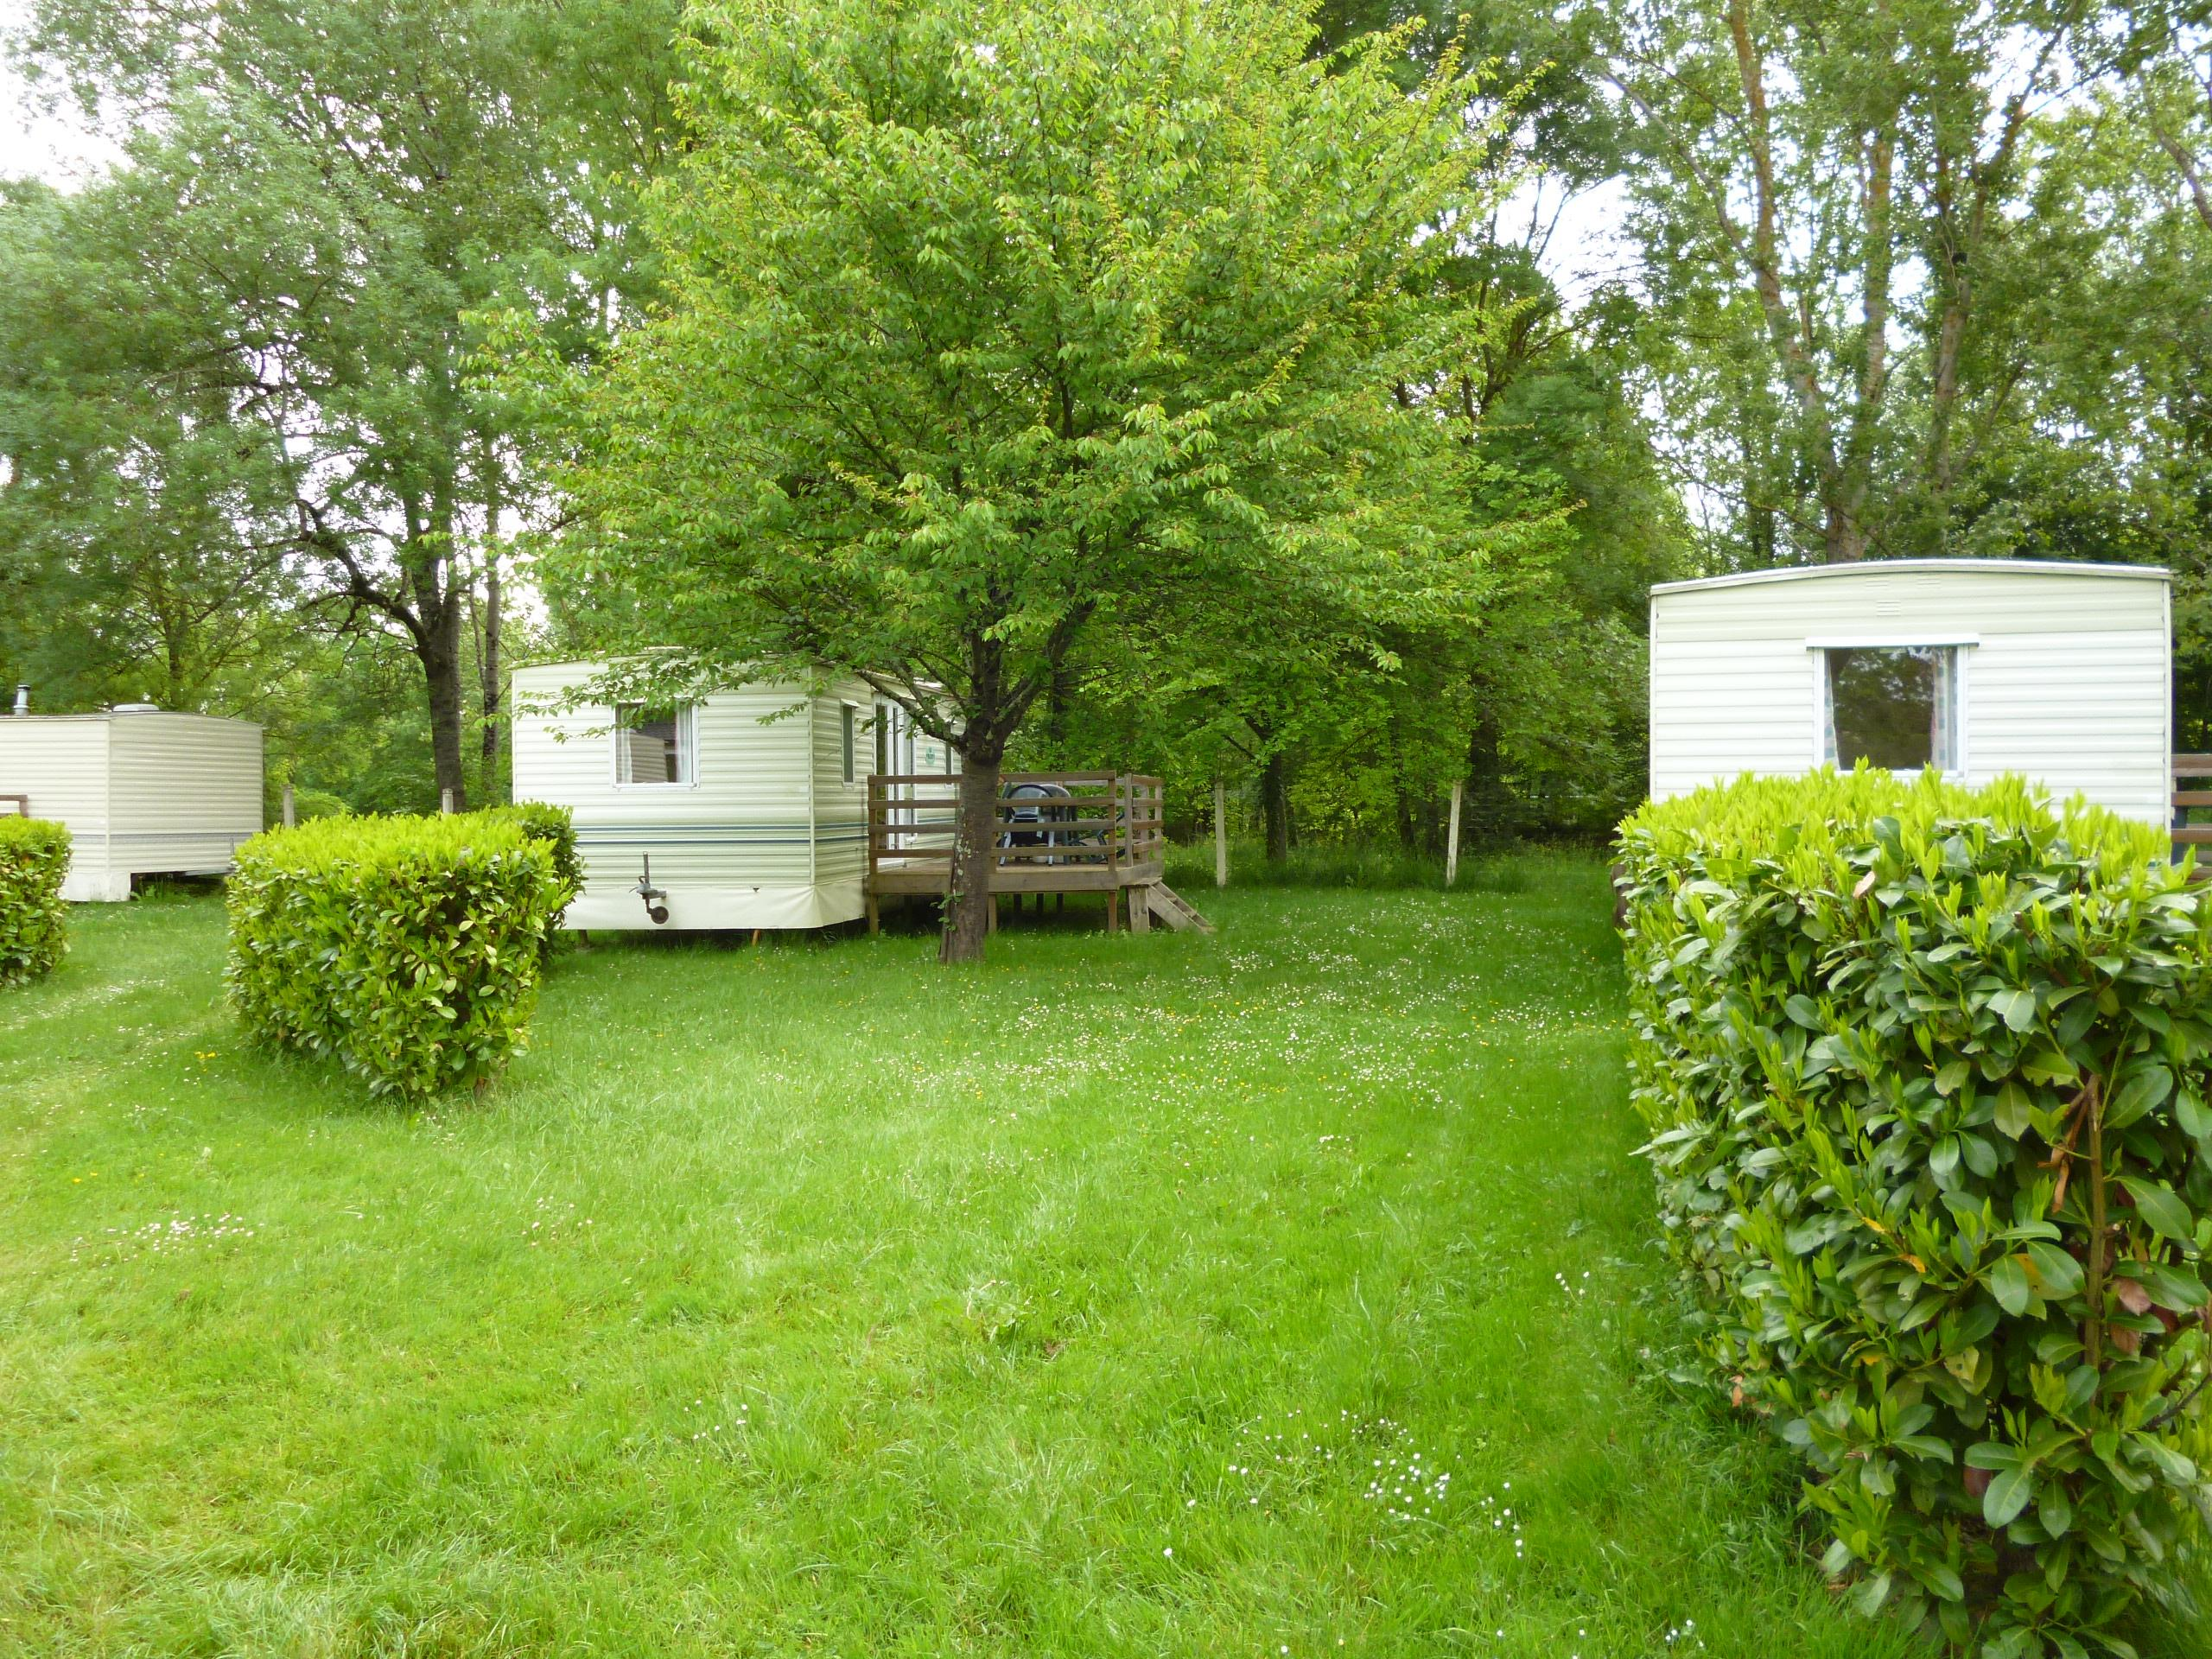 Location - Mobil-Home 2 Chambres Willerby (>15 Ans) 4 Adultes 1 Enfant 23M² - Camping Le Mouliat